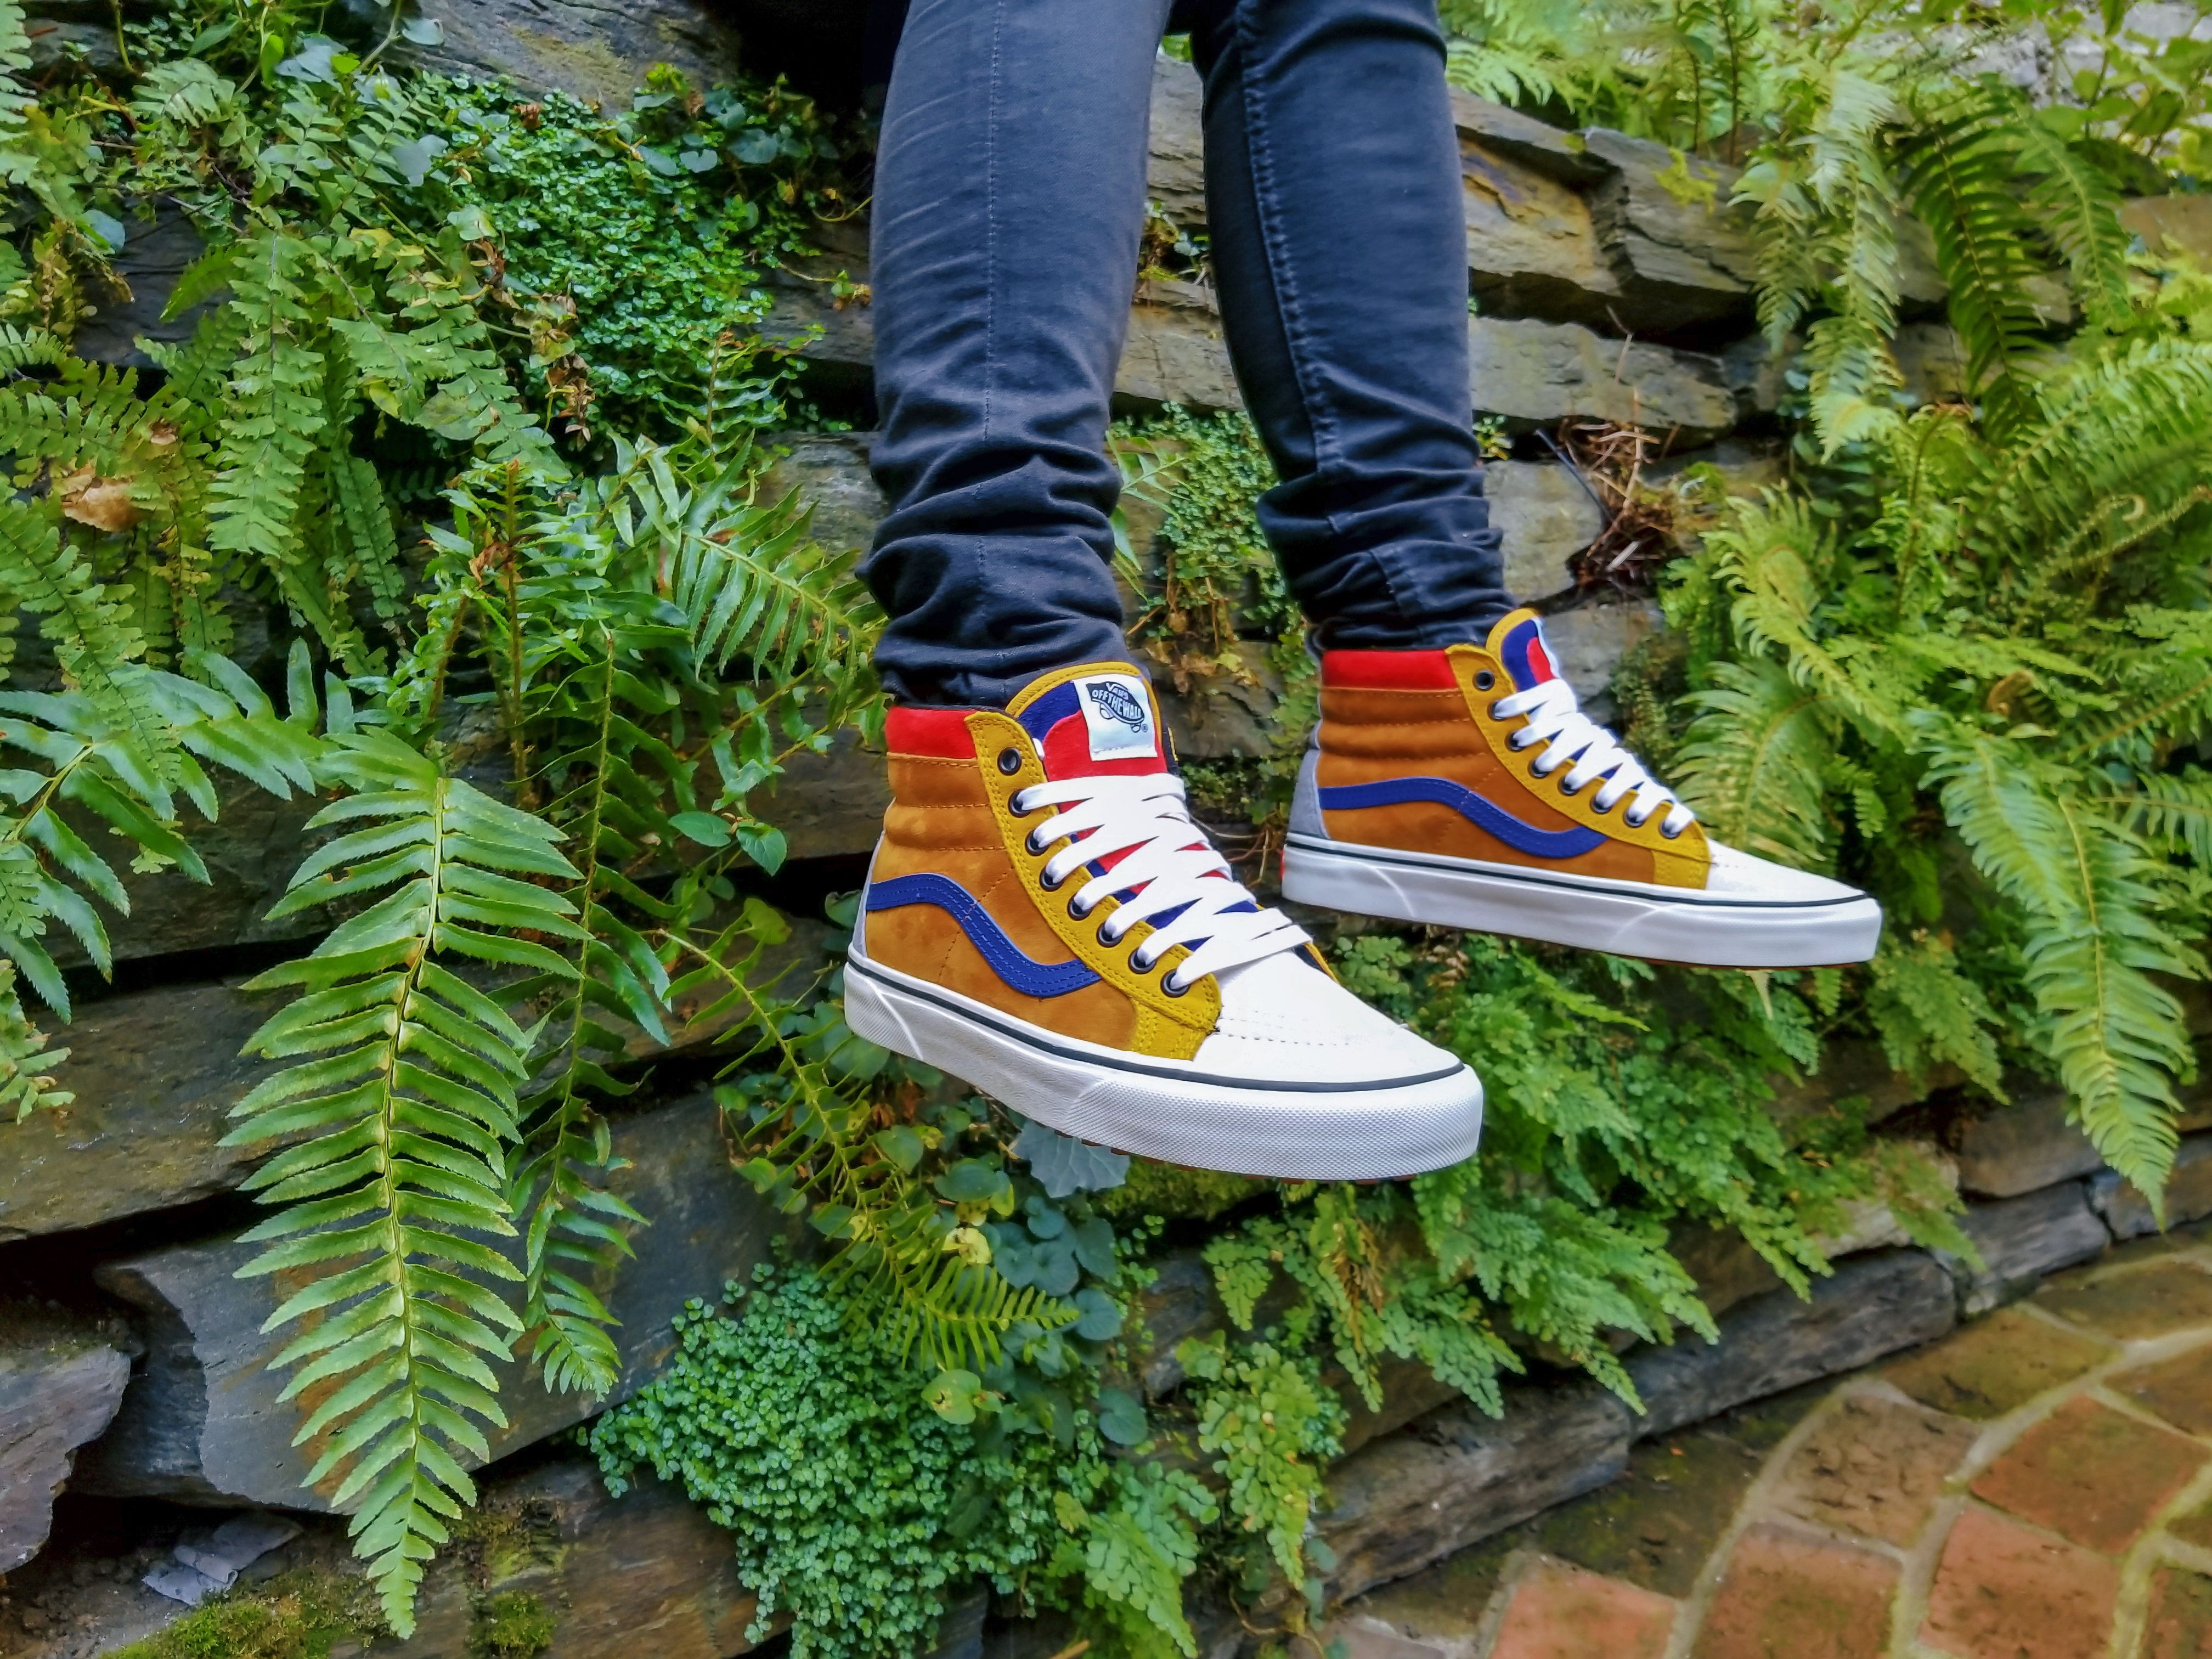 f026cbefa2 These new  vans Sk8-Hi MTE kicks will keep you looking fresh and keep your  feet toasty as the crisp cool weather arrives. With a heat retention layer